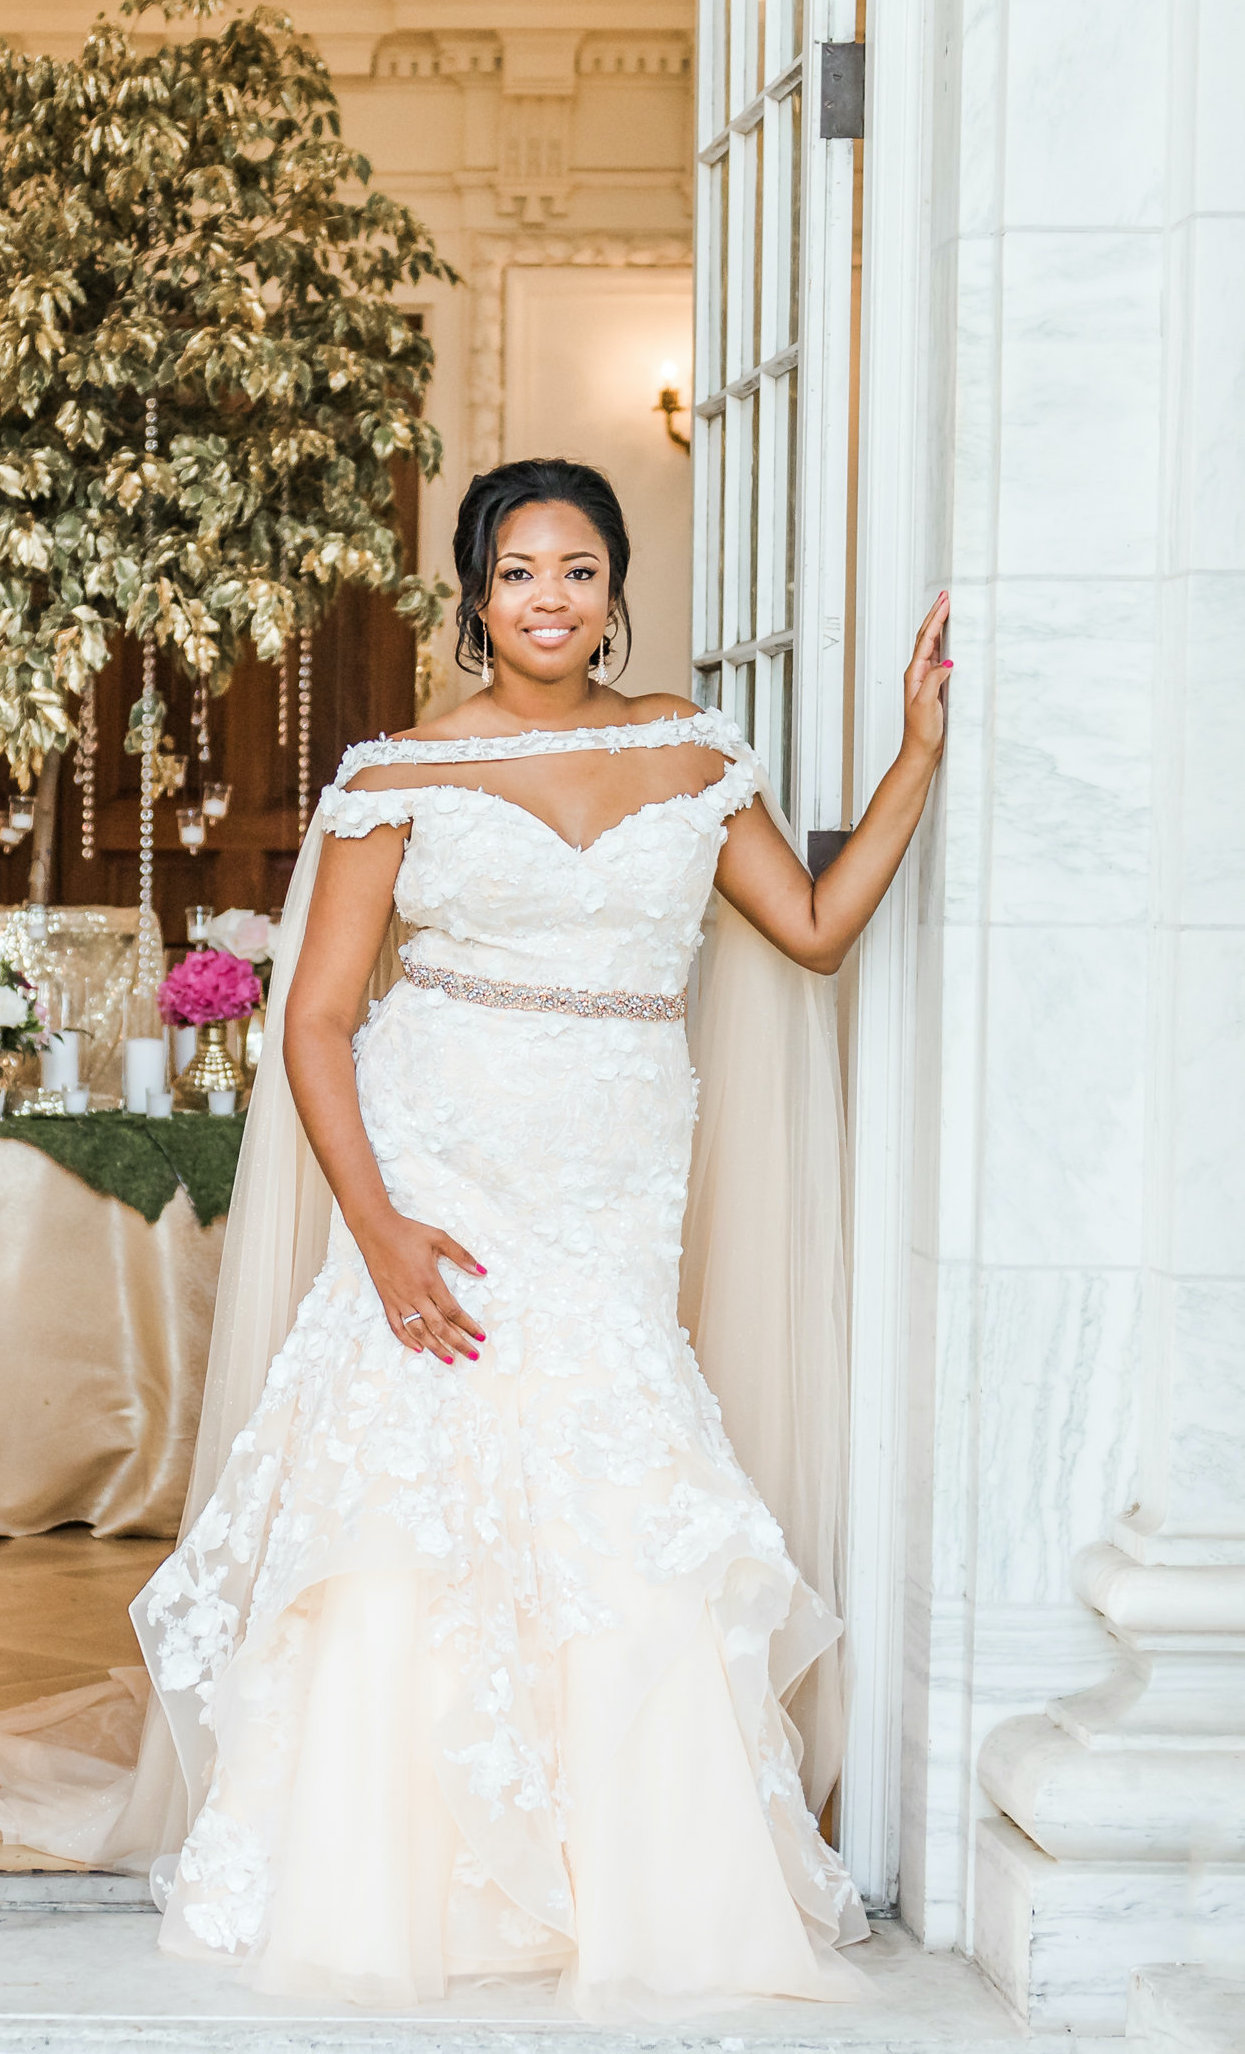 Anomalie specialized in making online wedding dresses for plus sized brides, including dresses with off the shoulder sleeves, floral lace, and tiers.